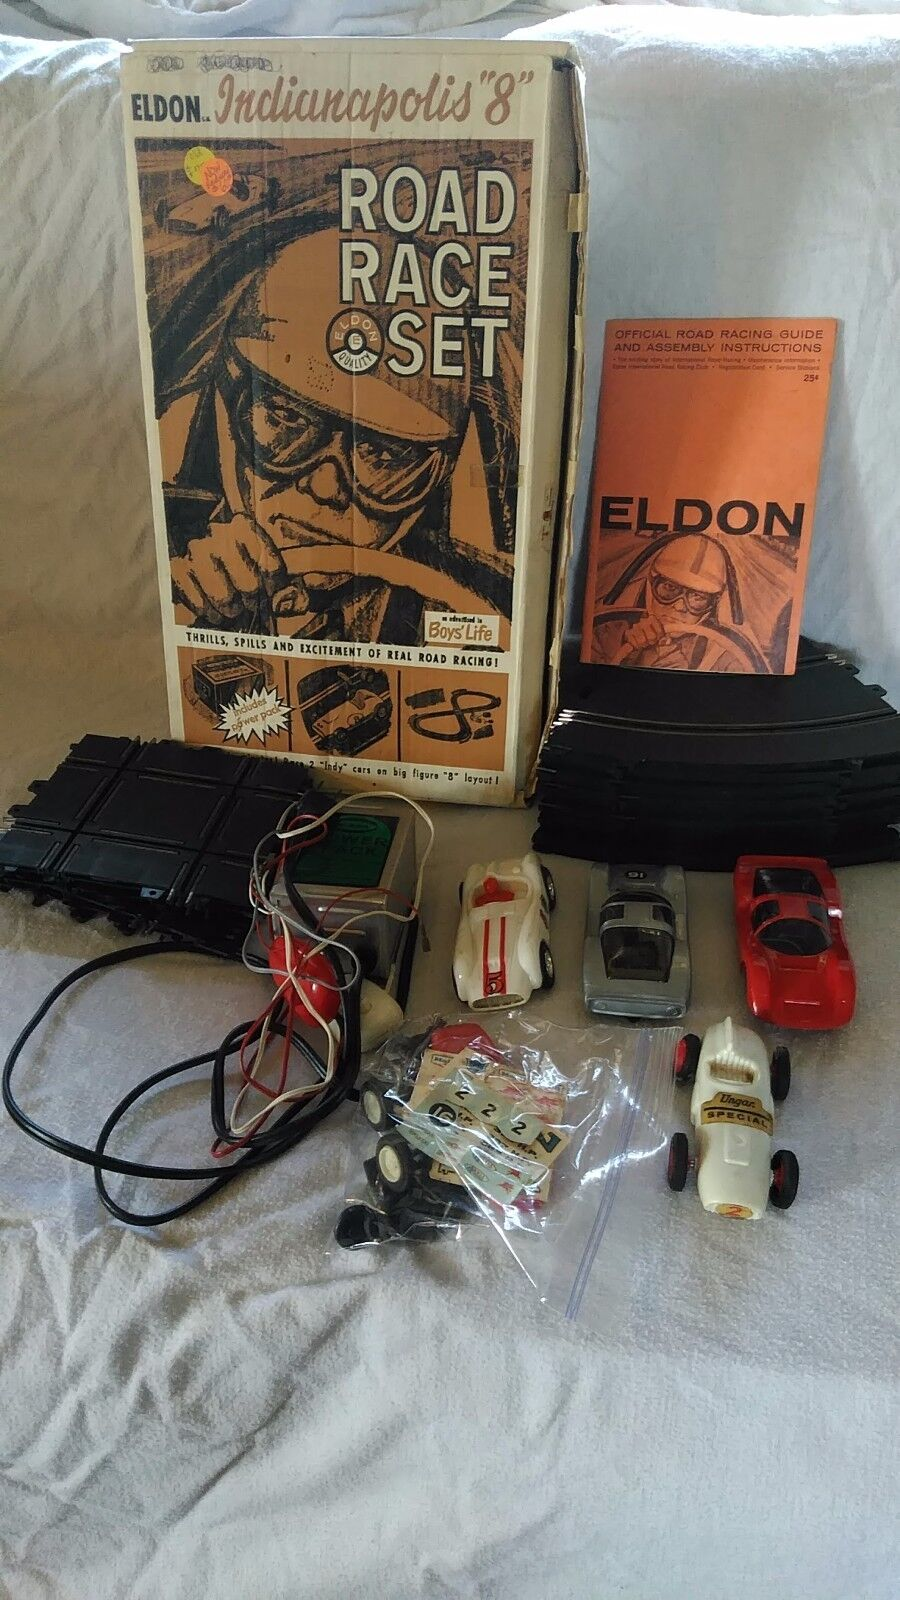 1963  Eldon Indianapolis 8 Road Race Set with Box  9814 & two Extra voitures  livraison gratuite!